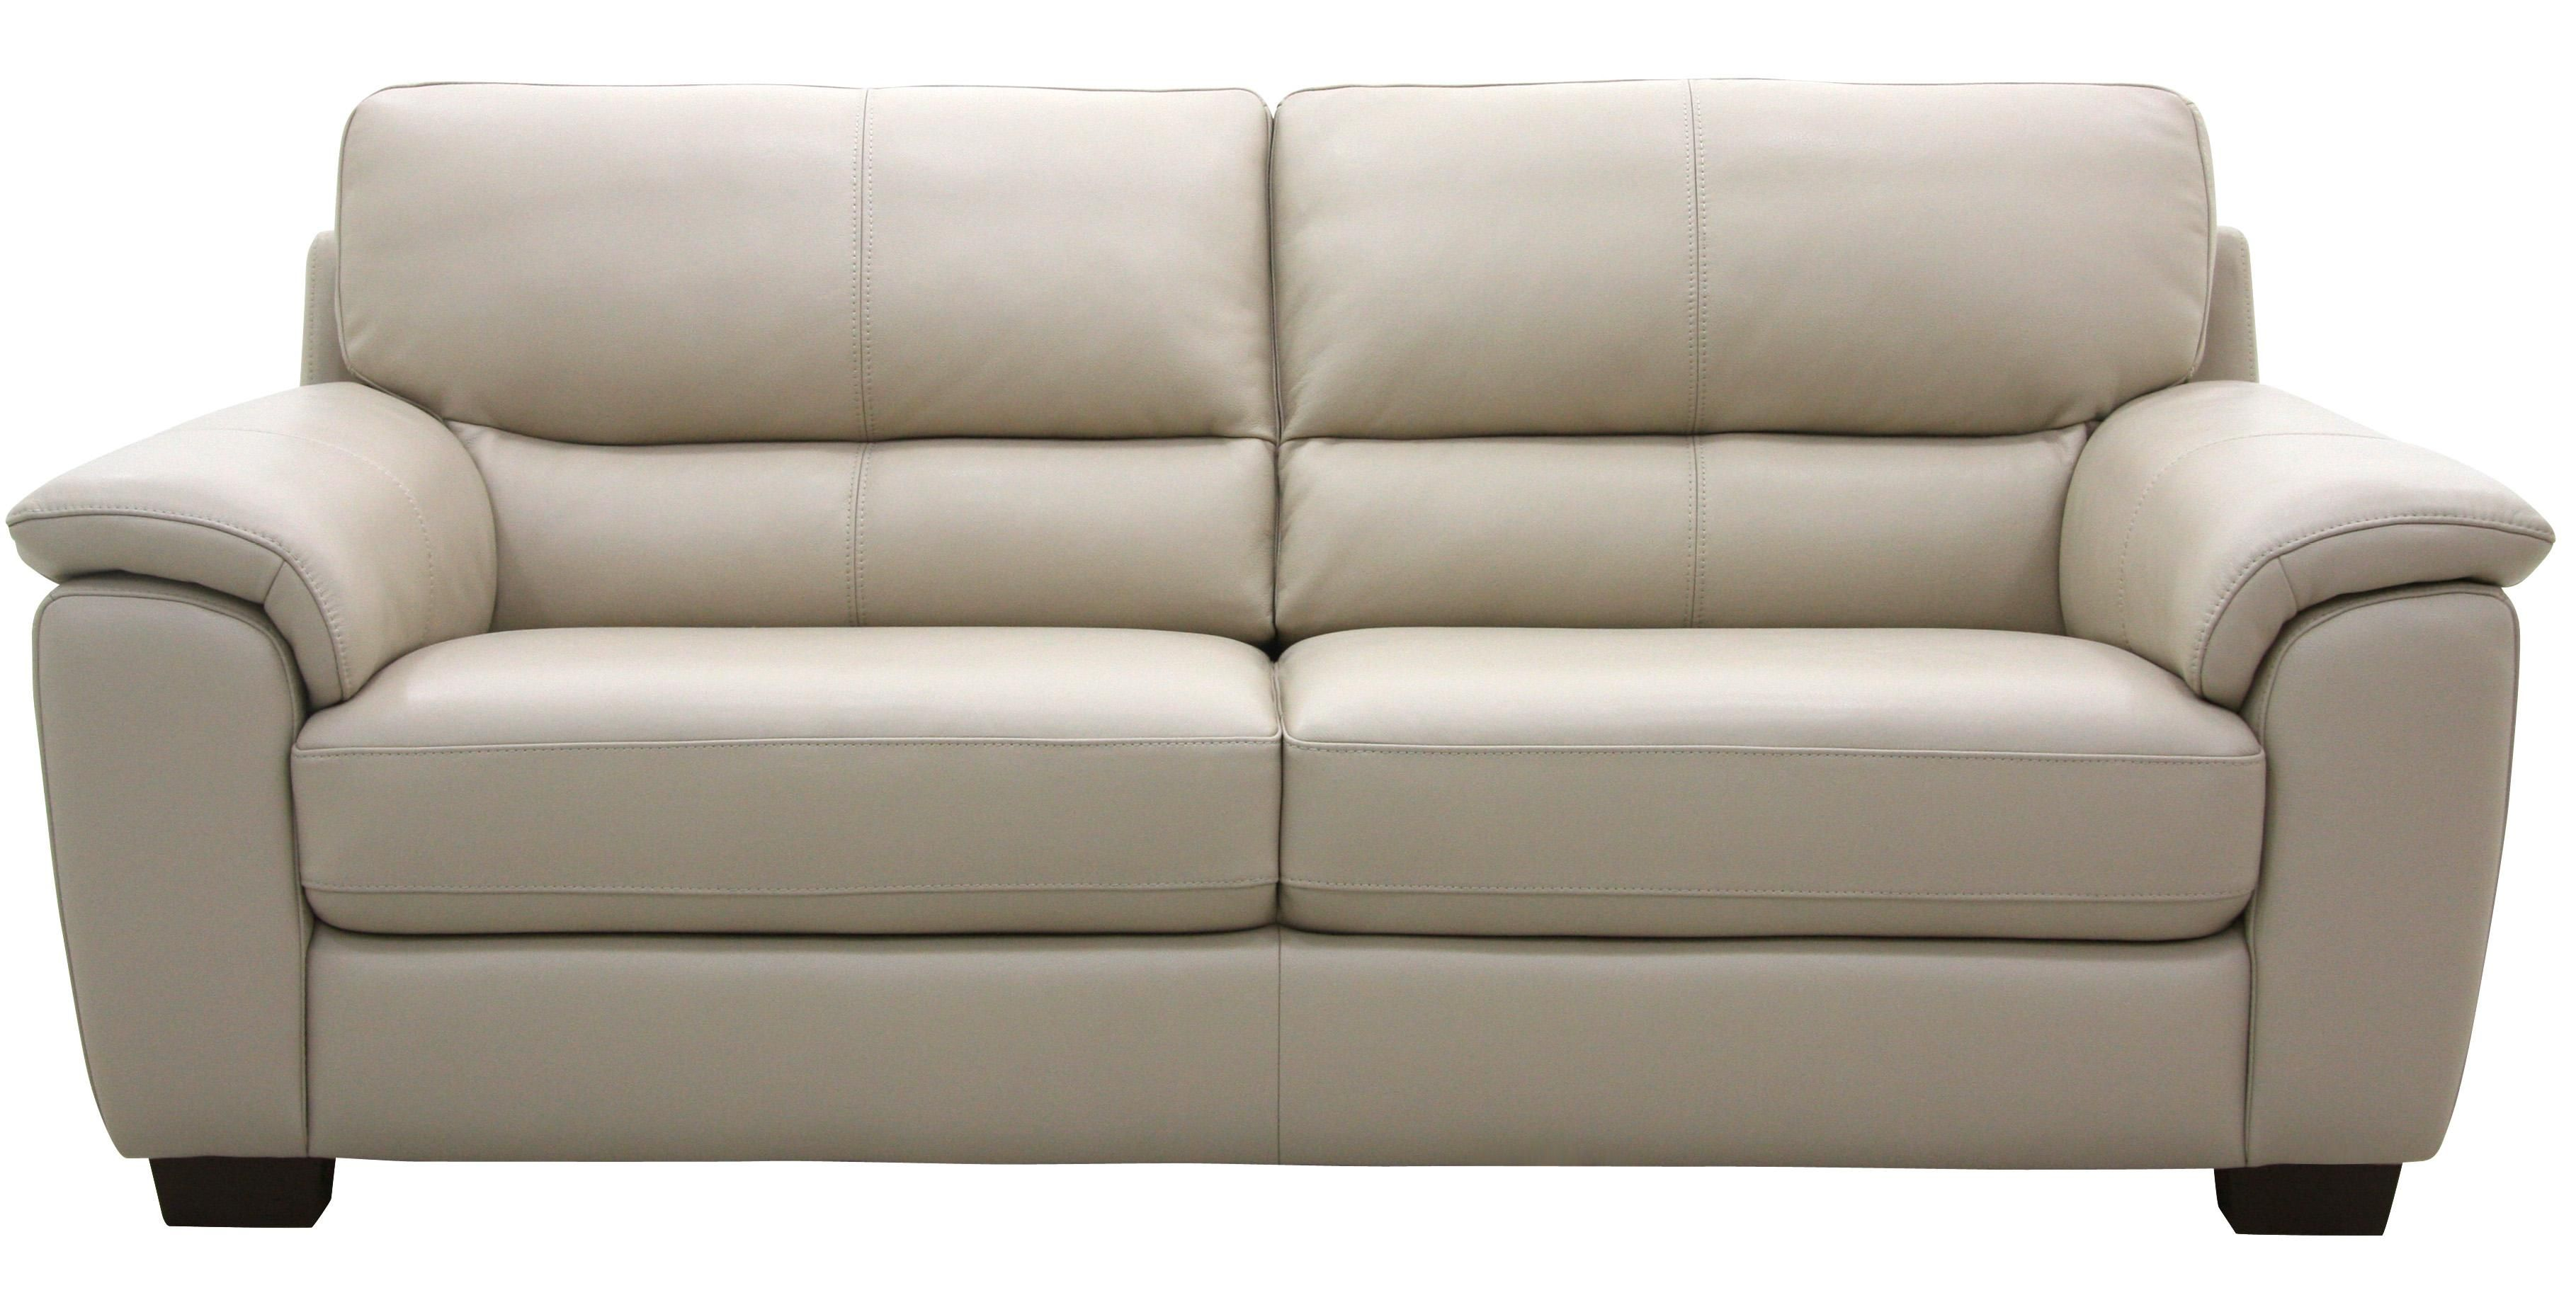 Htl Furniture 9170 Leather Collection Featuring Loveseat Sofa Homedecor